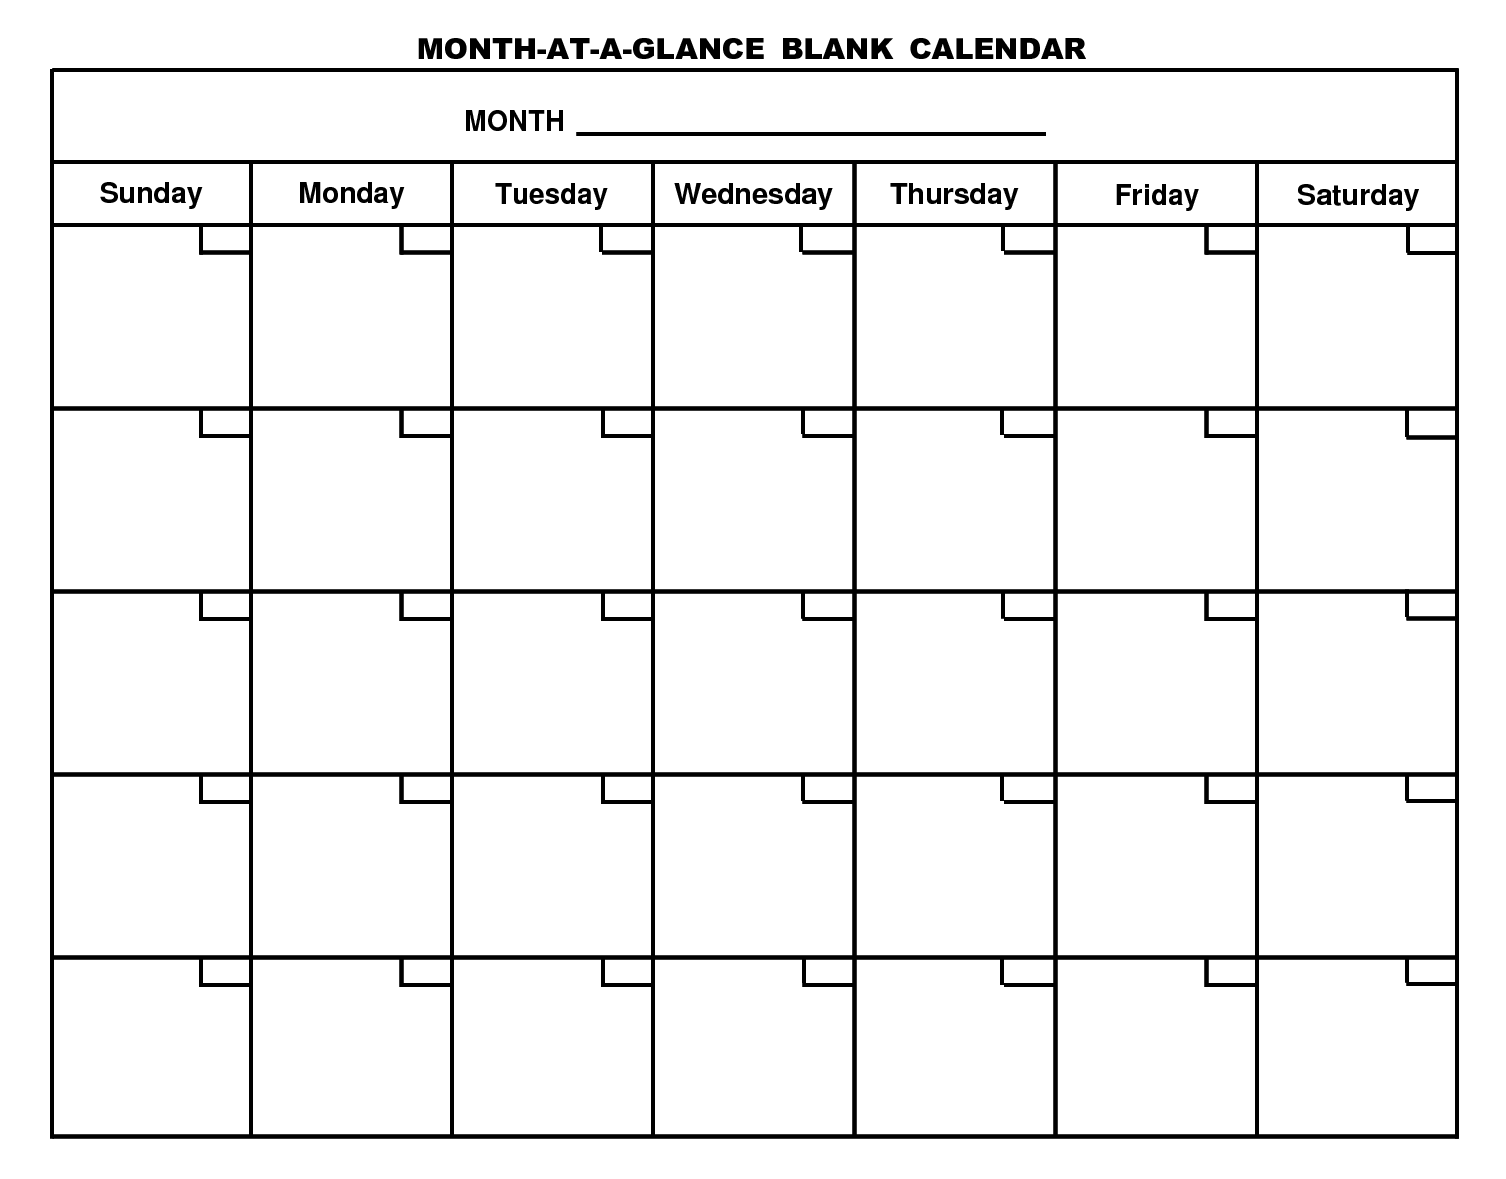 Blank month calendar clipart. Printable monthly template